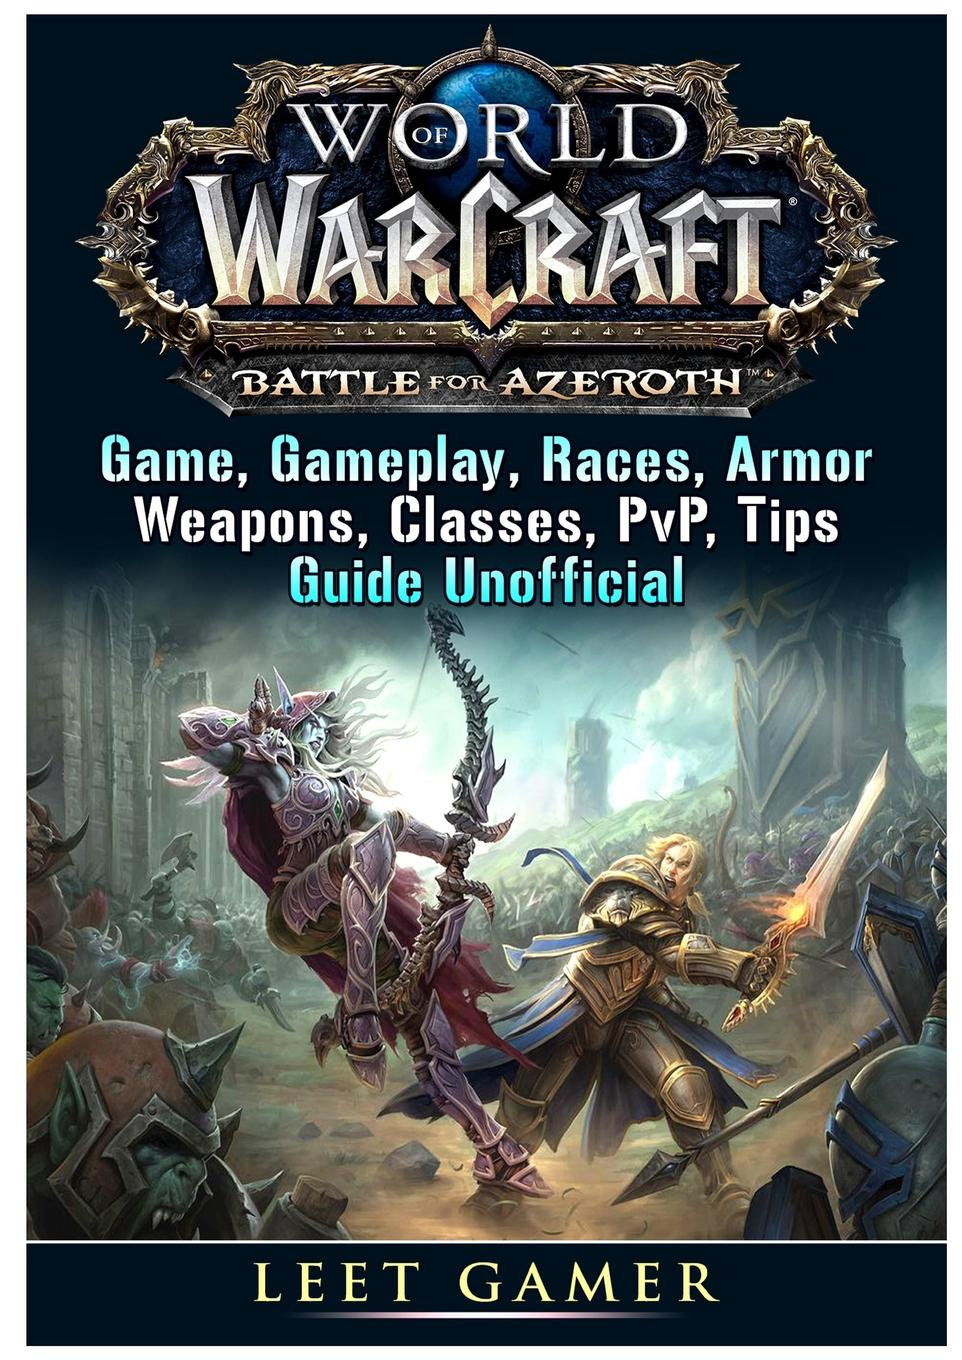 Leet Gamer World of Warcraft Battle For Azeroth Game, Gameplay, Races, Armor, Weapons, Classes, PvP, Tips, Guide Unofficial jim hornickel negotiating success tips and tools for building rapport and dissolving conflict while still getting what you want